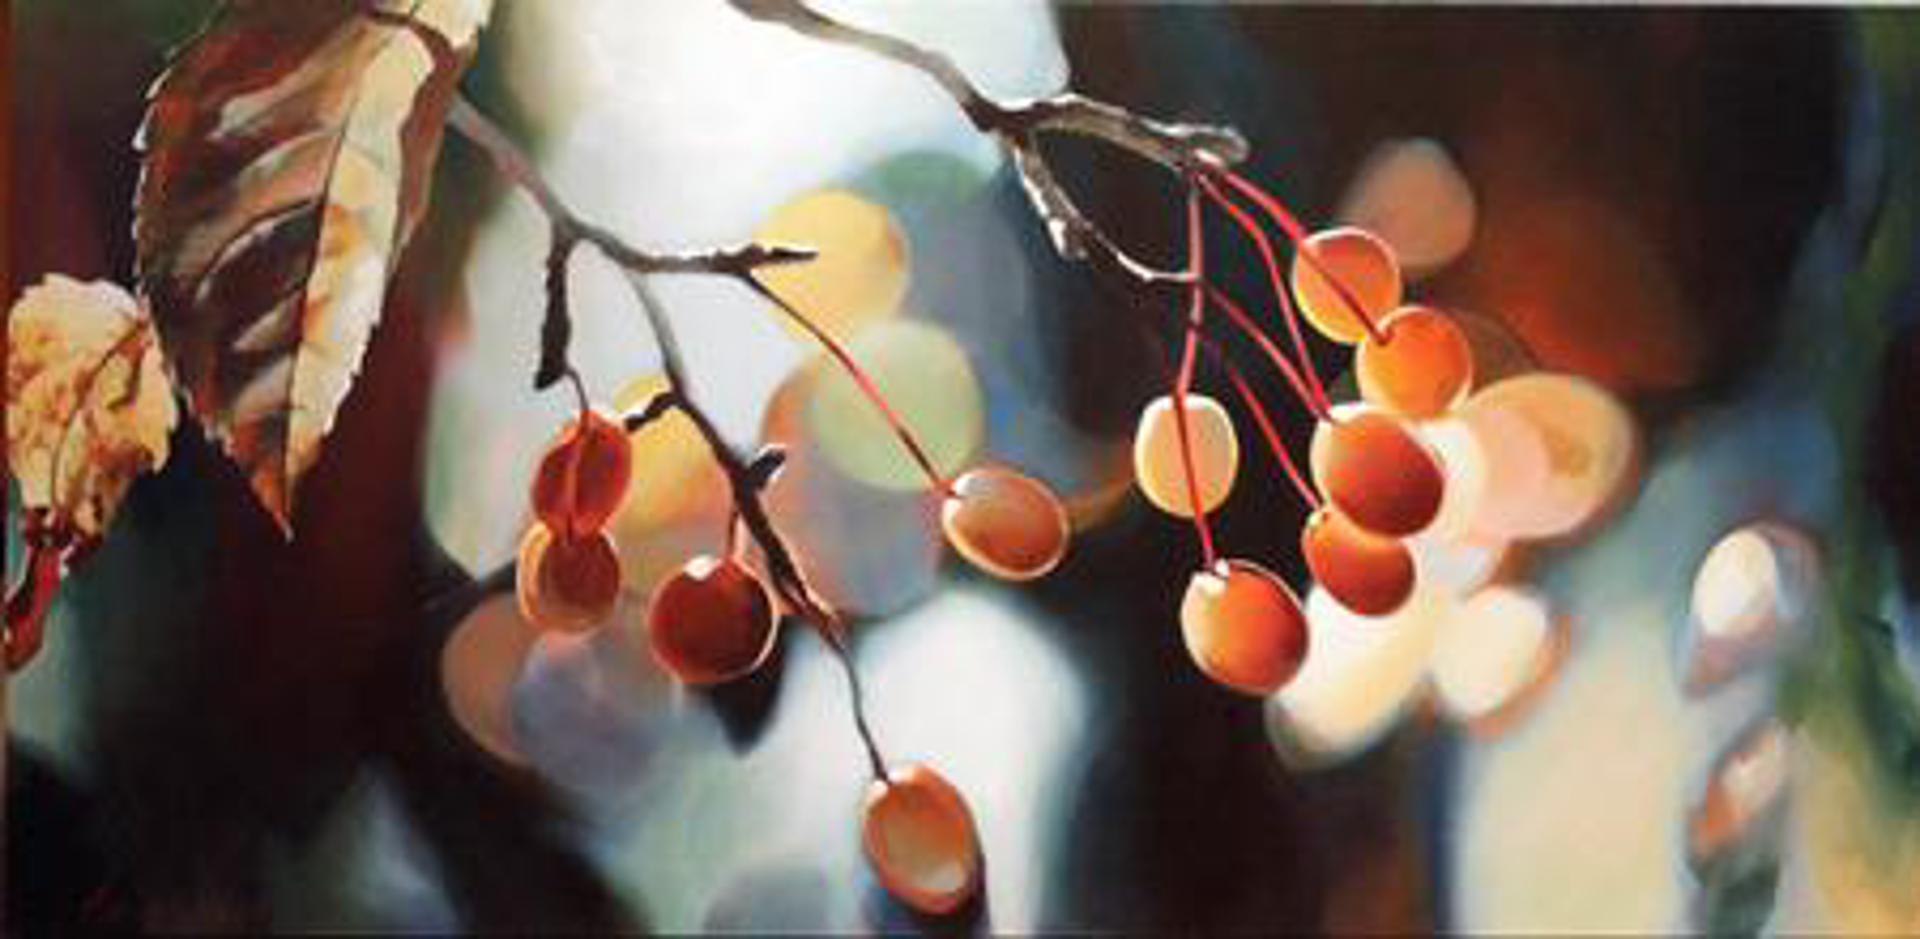 Crabapples for Motherwell by Rein Vanderhill